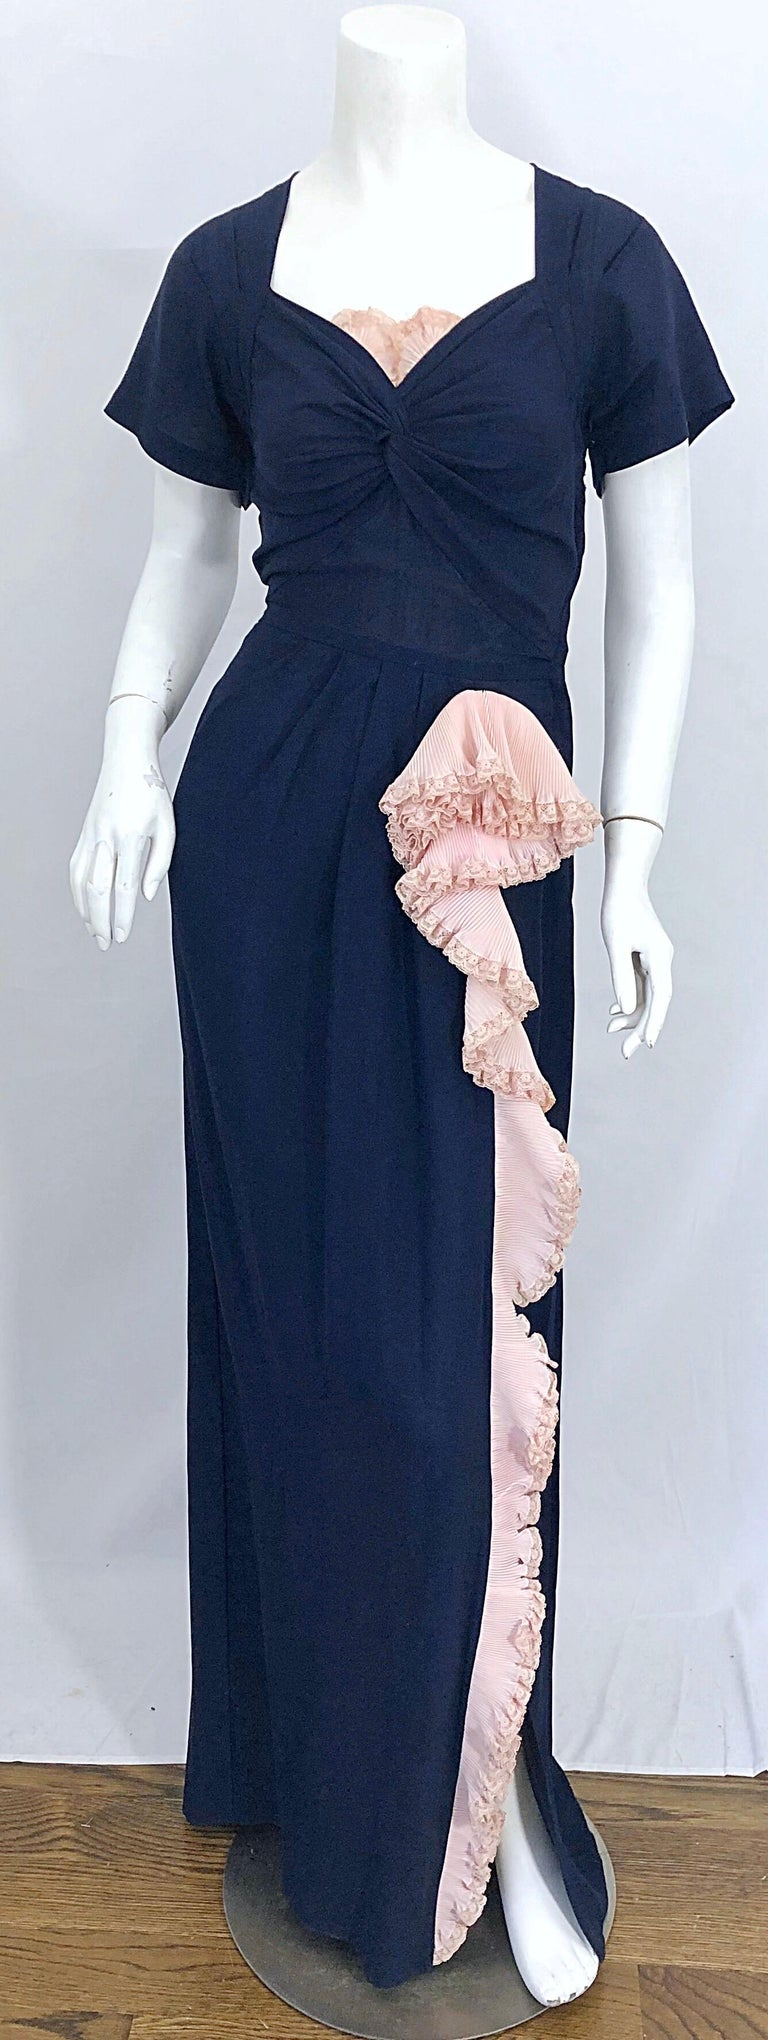 1940s Demi Couture Navy Blue + Pale Pink Short Sleeve 40s Vintage Gown / Dress For Sale 9